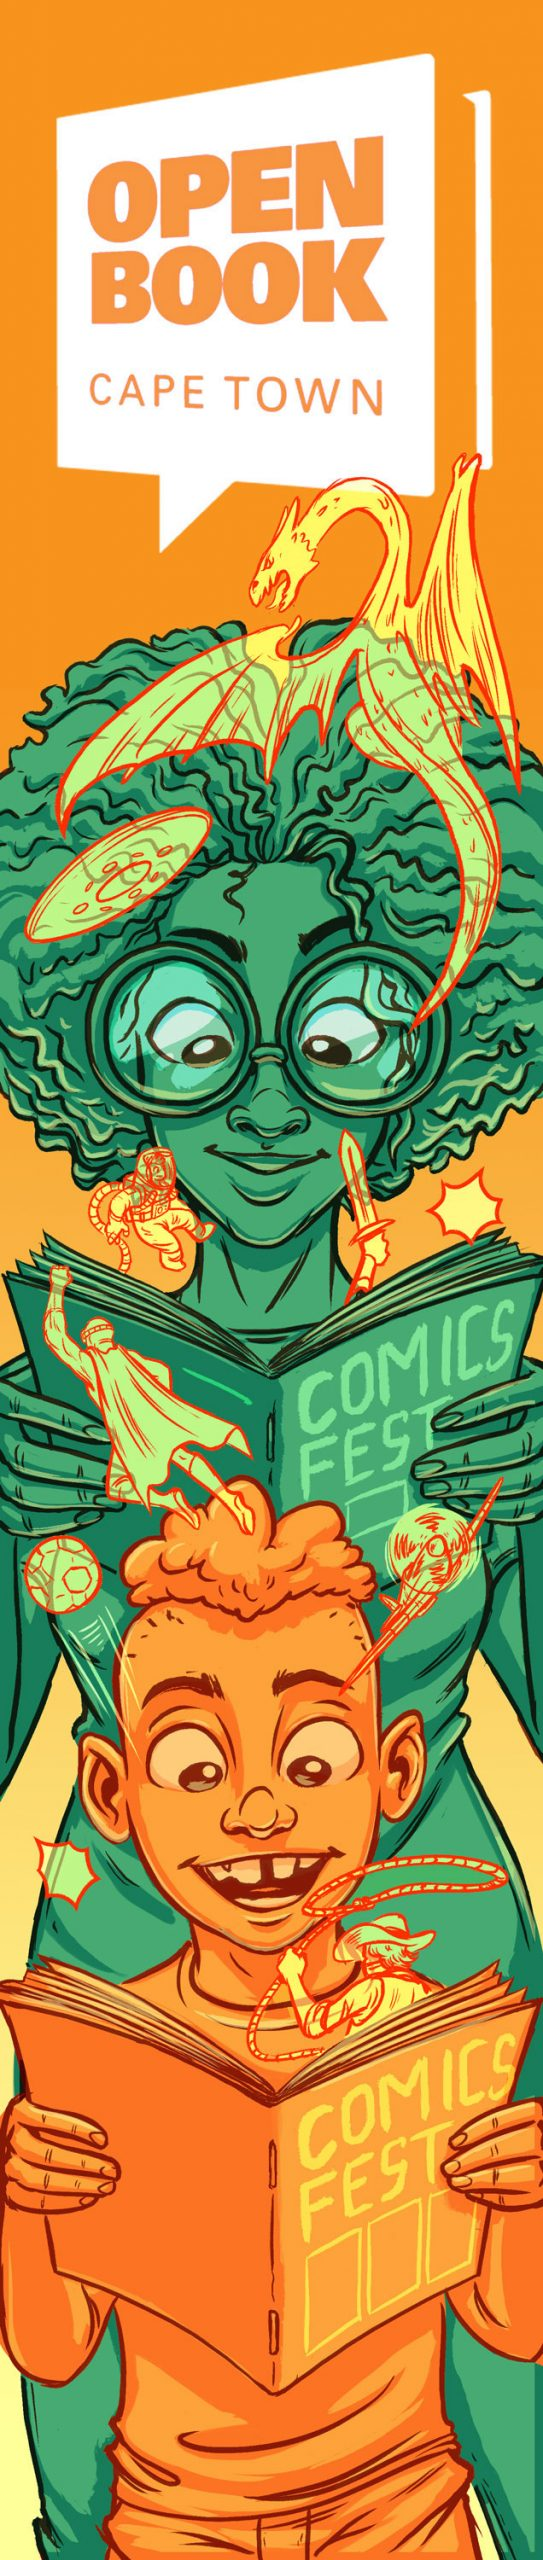 Outdoor banner design for Open Book Comics Fest.  by Ben Geldenhuys